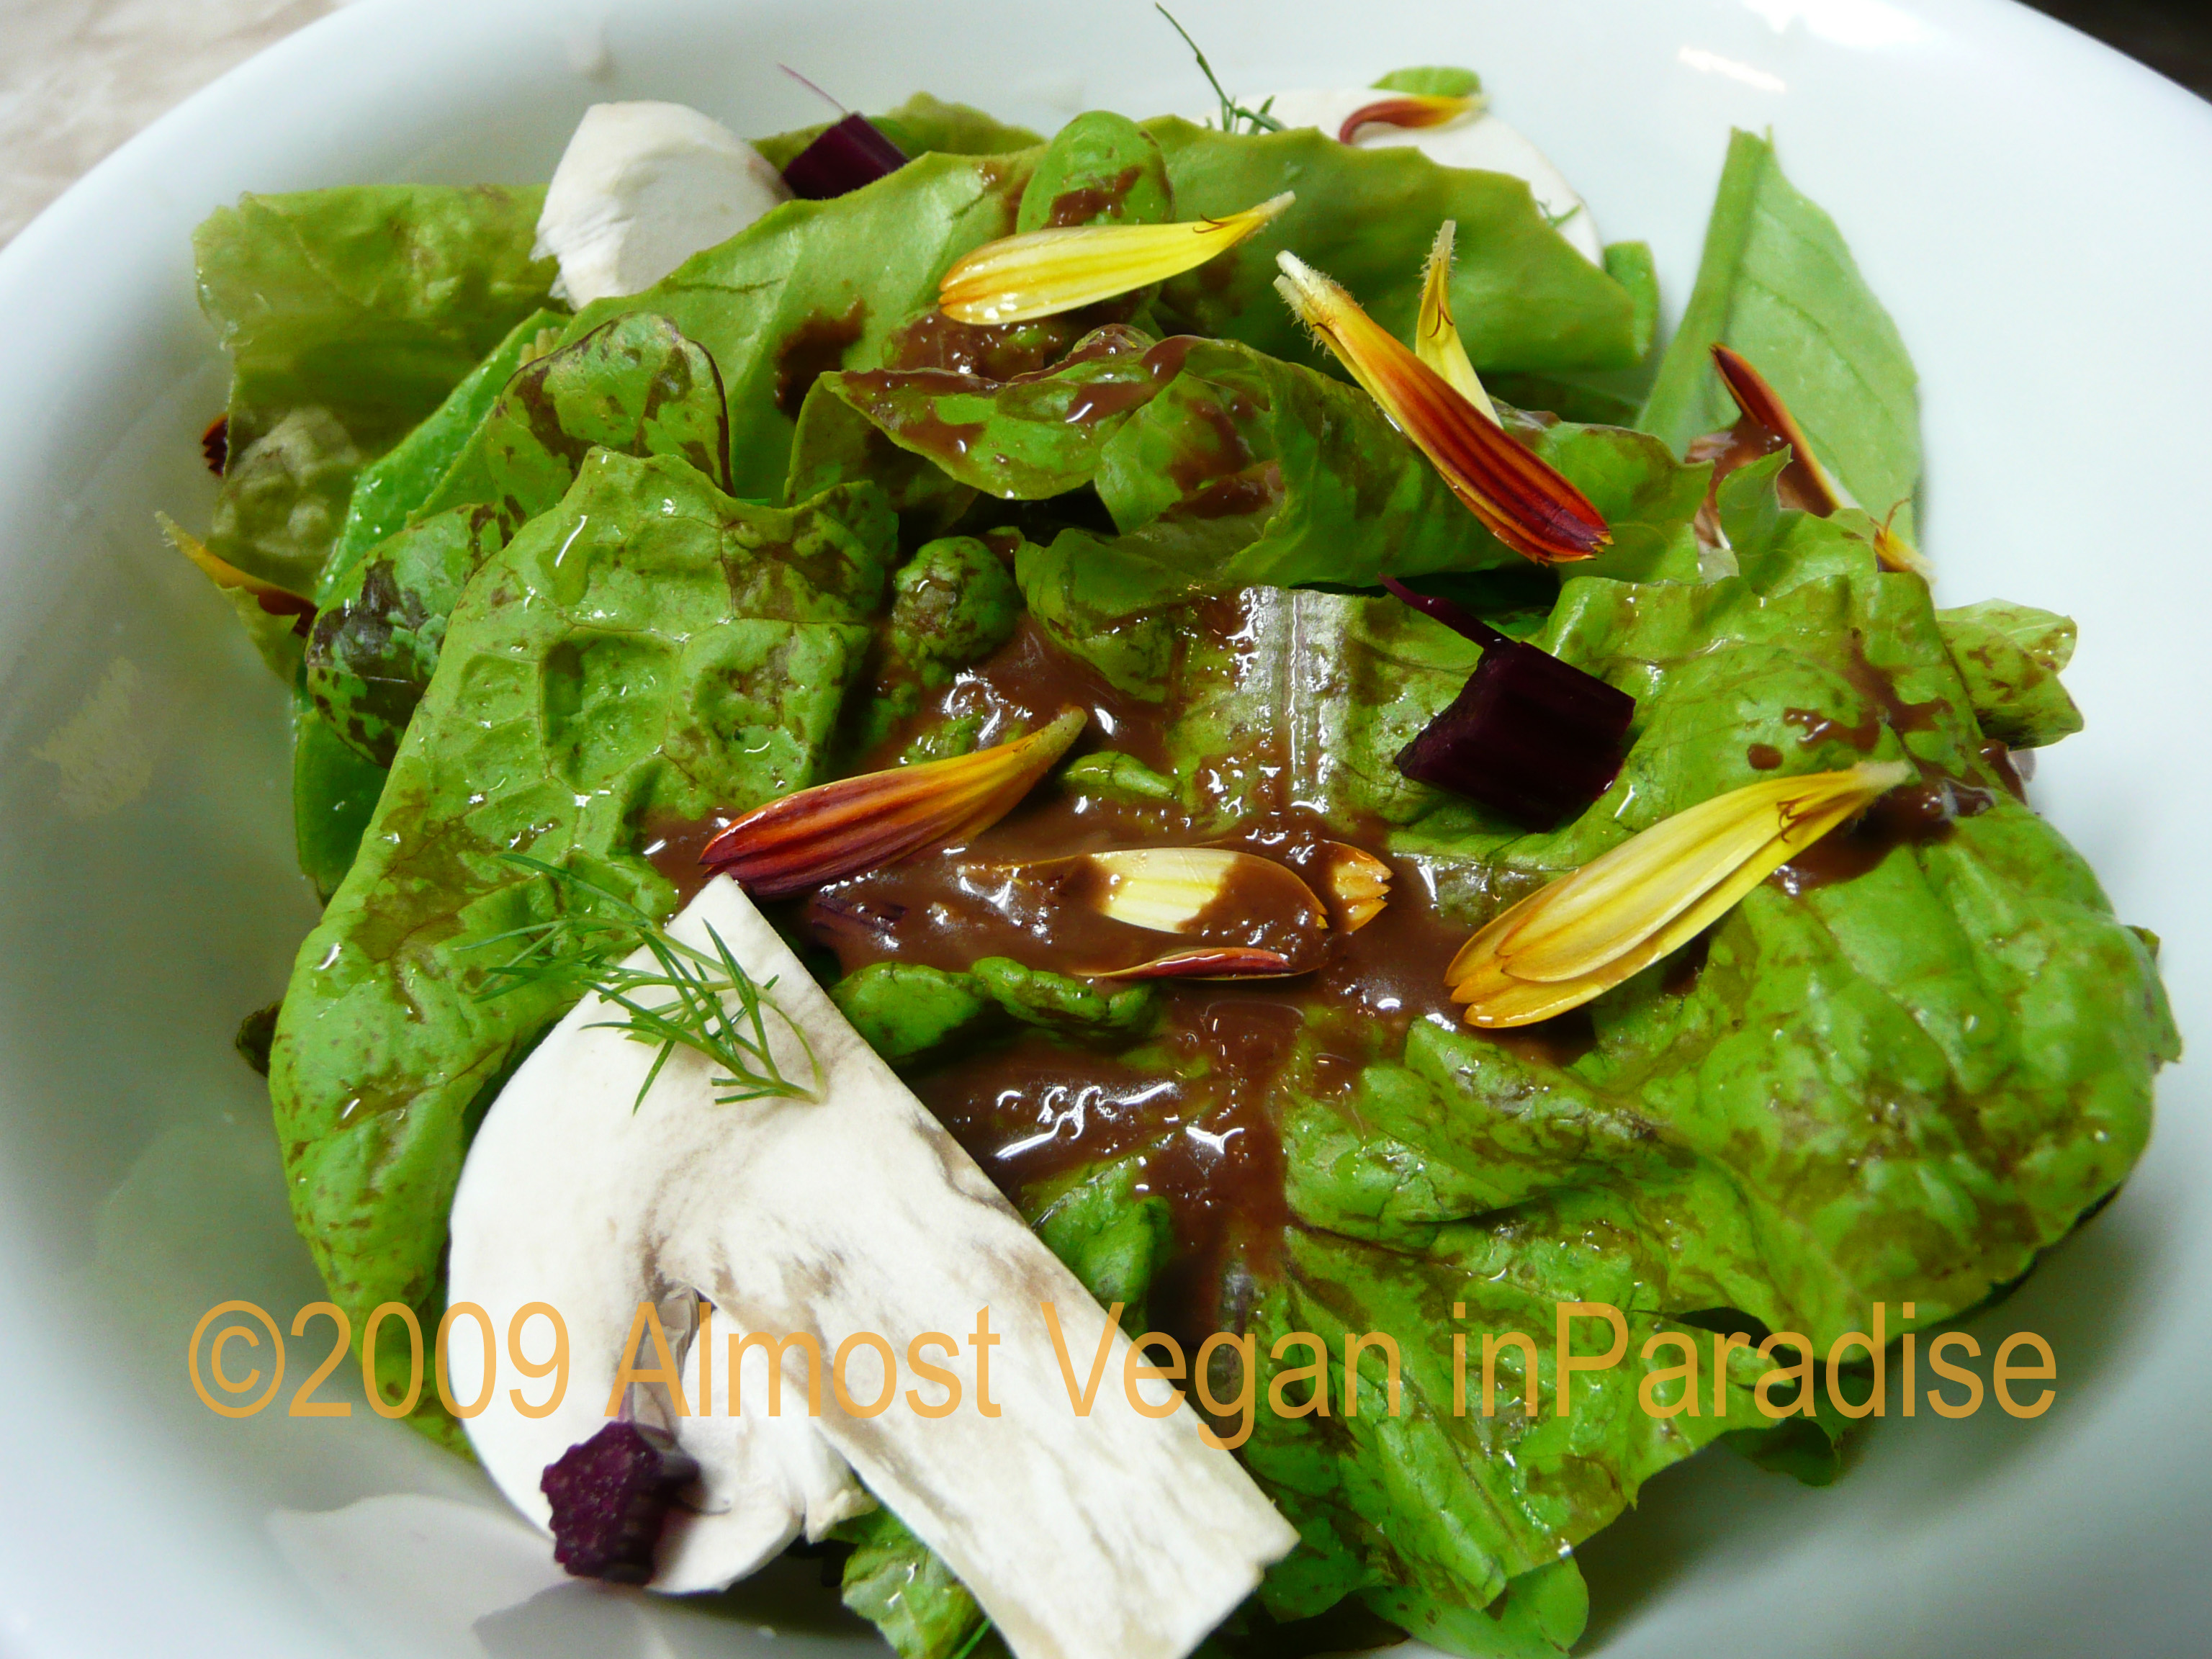 Organic garden greens with calendula petals and chocolate-miso dressing